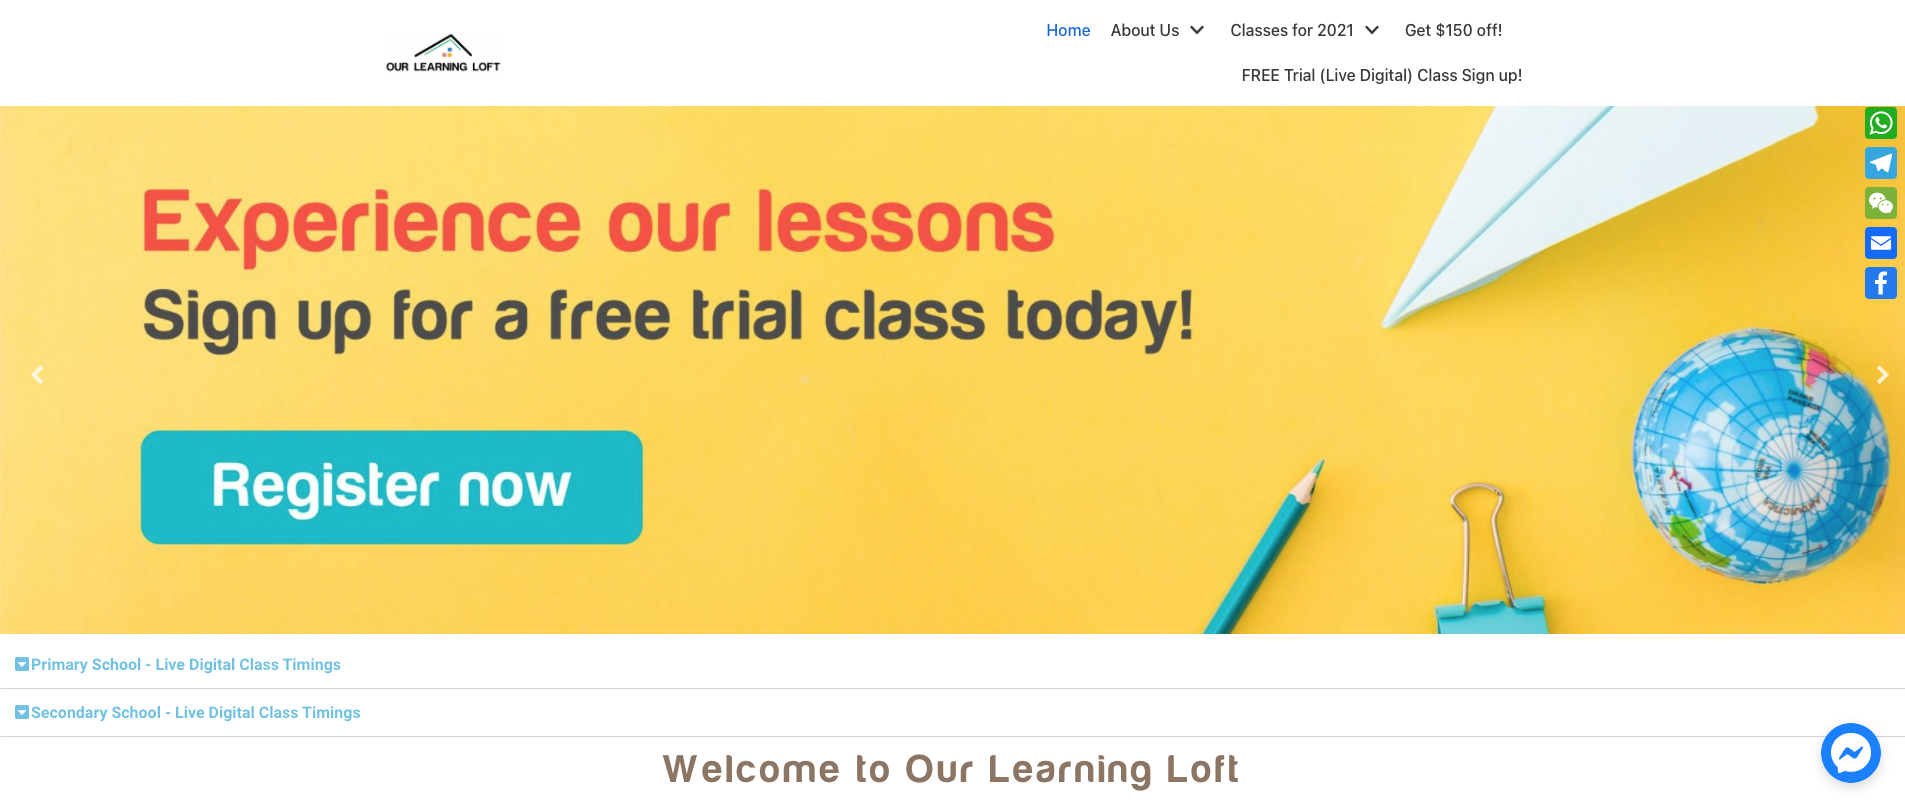 Our Learning Loft Primary School Tuition